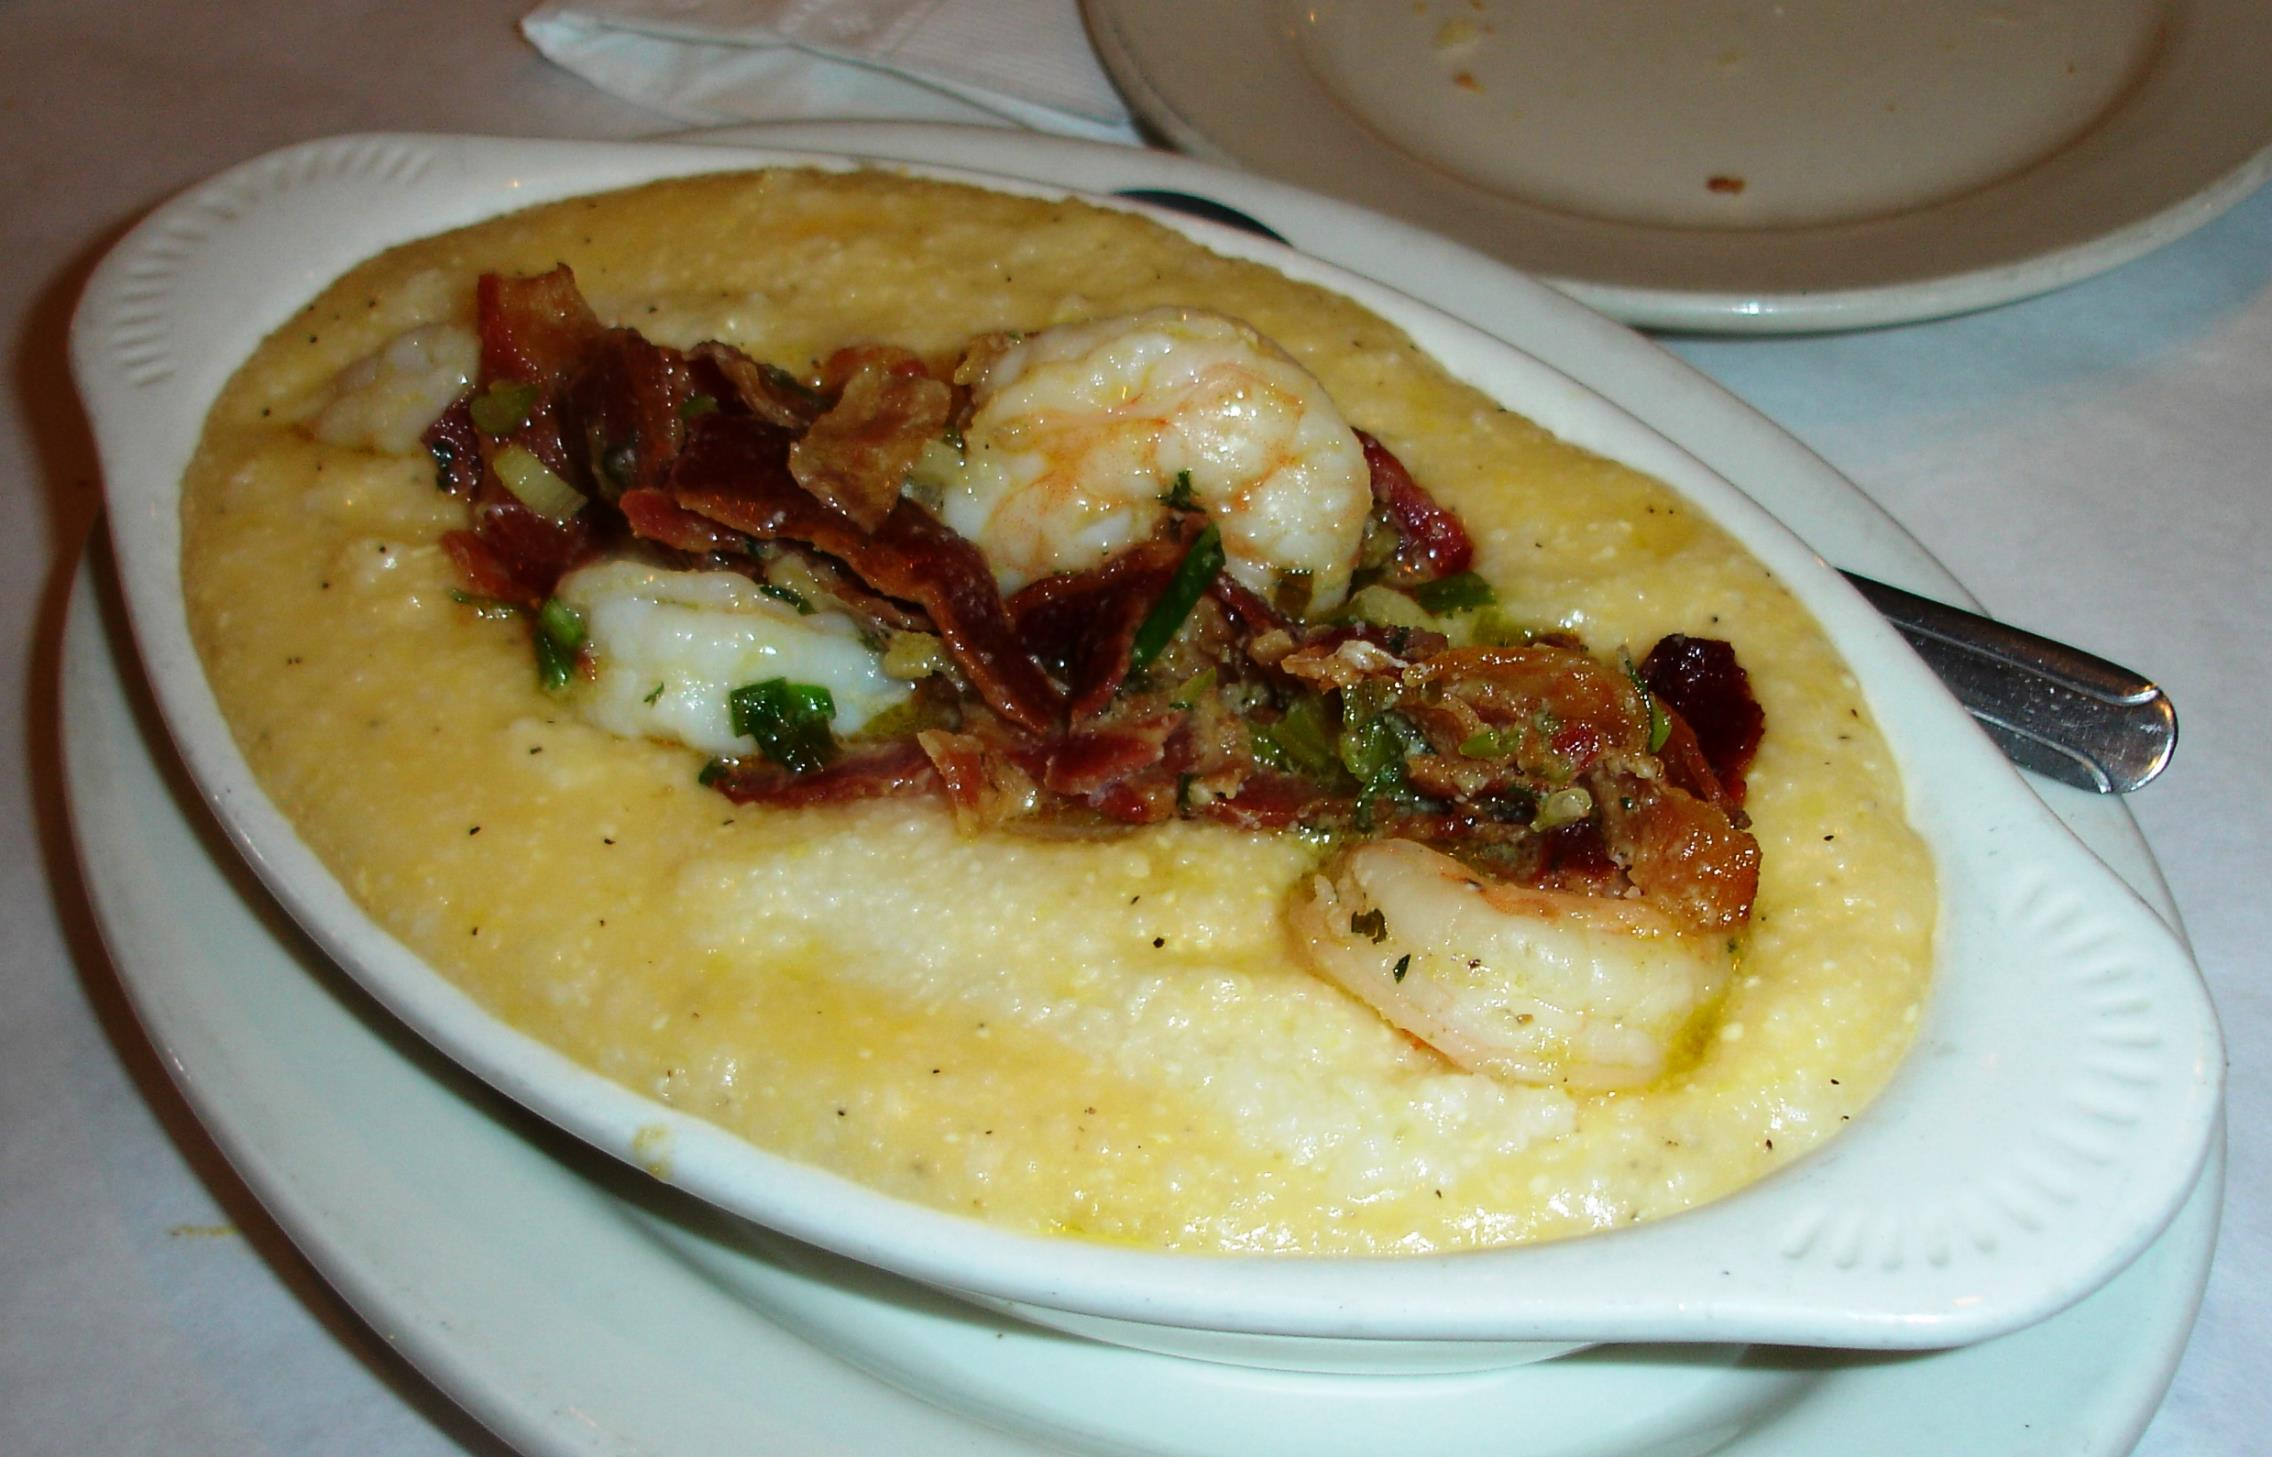 There's so much overlap between soul food and Southern food that a Carolina Lowcountry dish like Shrimp and Cheesy Grits fits right in on Pearl's menu.